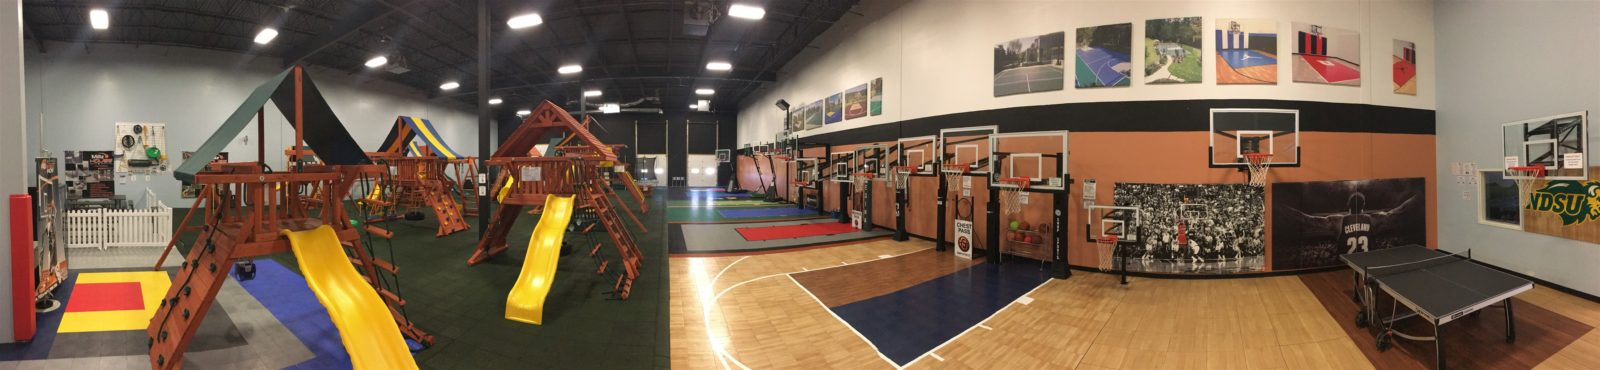 Millz House Showroom in Apple Valley featuring premium wooden swing sets, trampolines, indoor and outdoor game court athletic tiles, basketball hoops